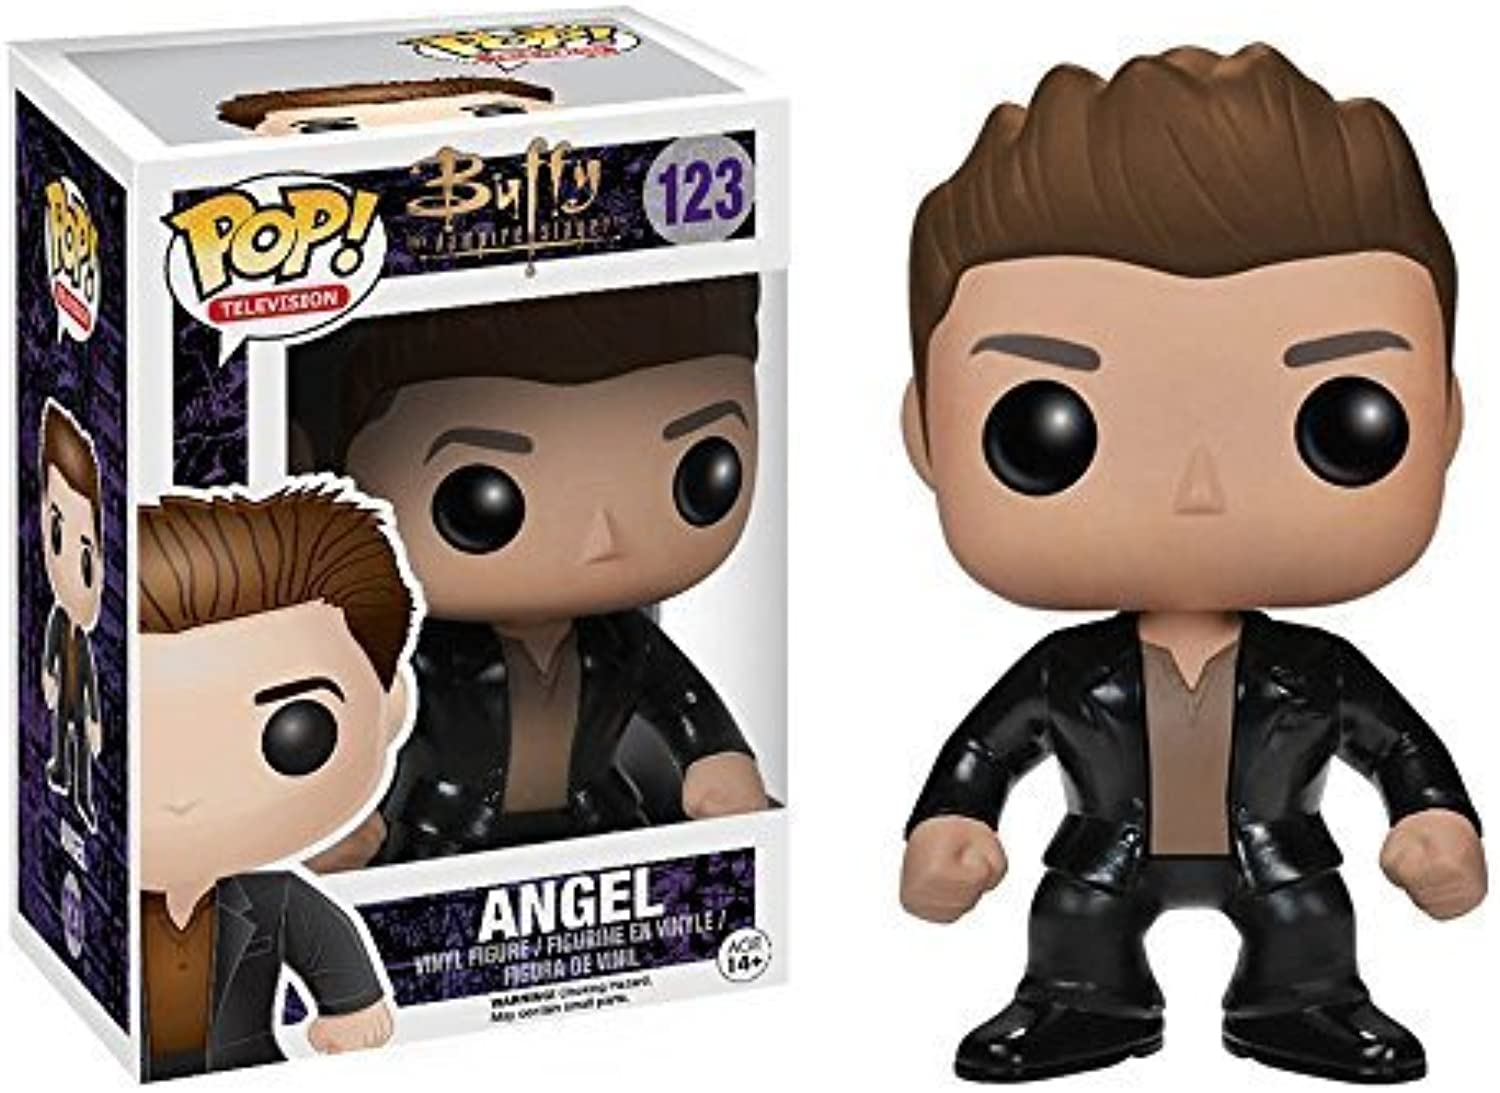 nuevo listado Angel  Funko POP  x Buffy the the the Vampire Slayer Vinyl Figura by Buffy the Vampire Slayer  orden ahora con gran descuento y entrega gratuita